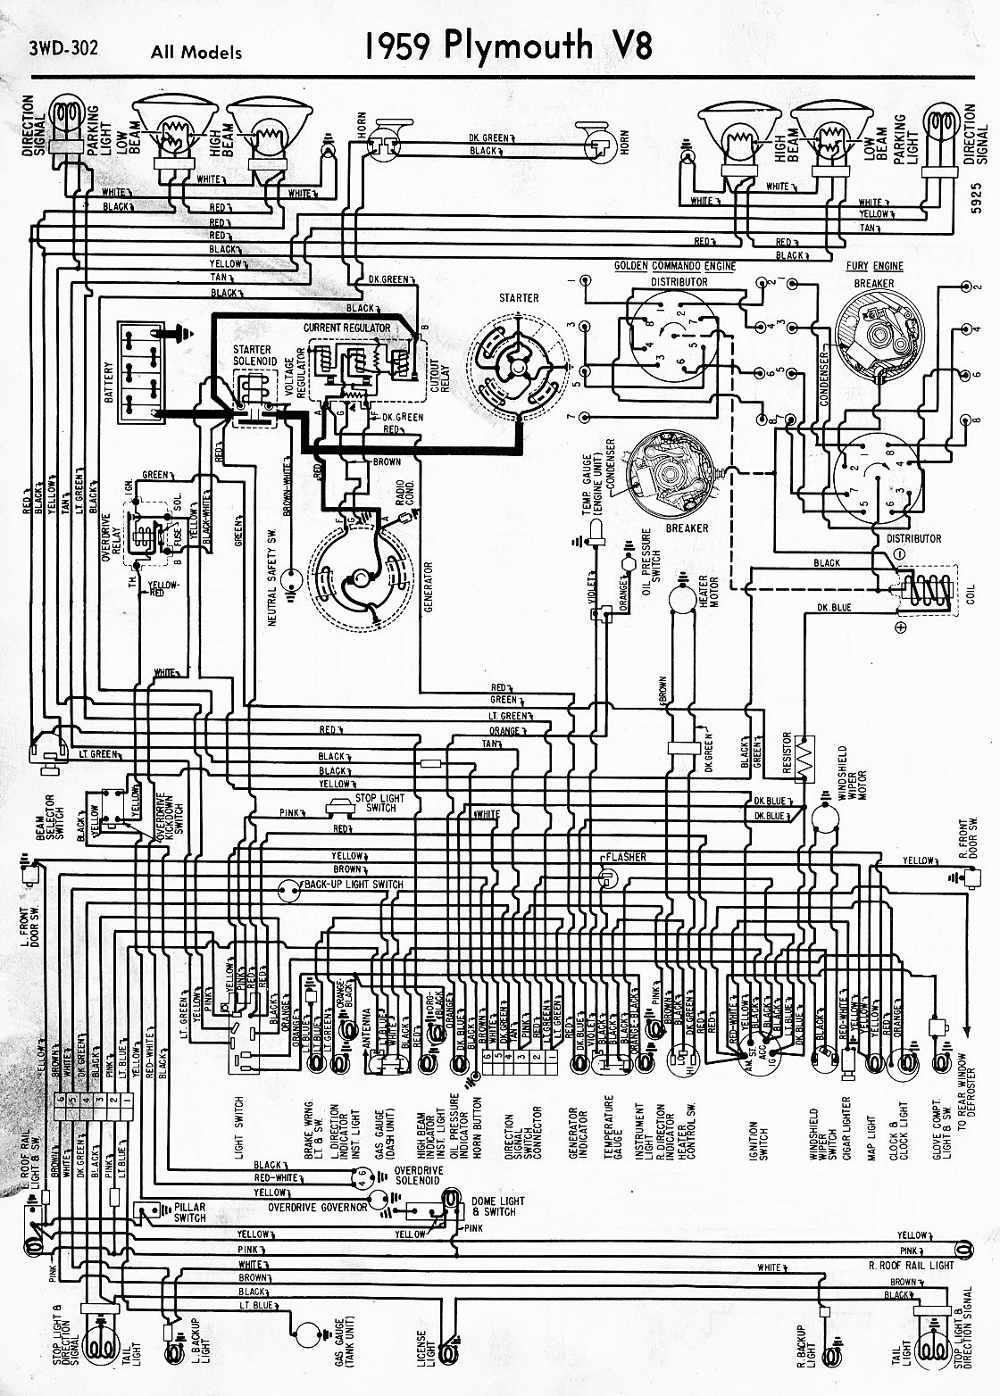 Mercedes C200 Wiring Diagram